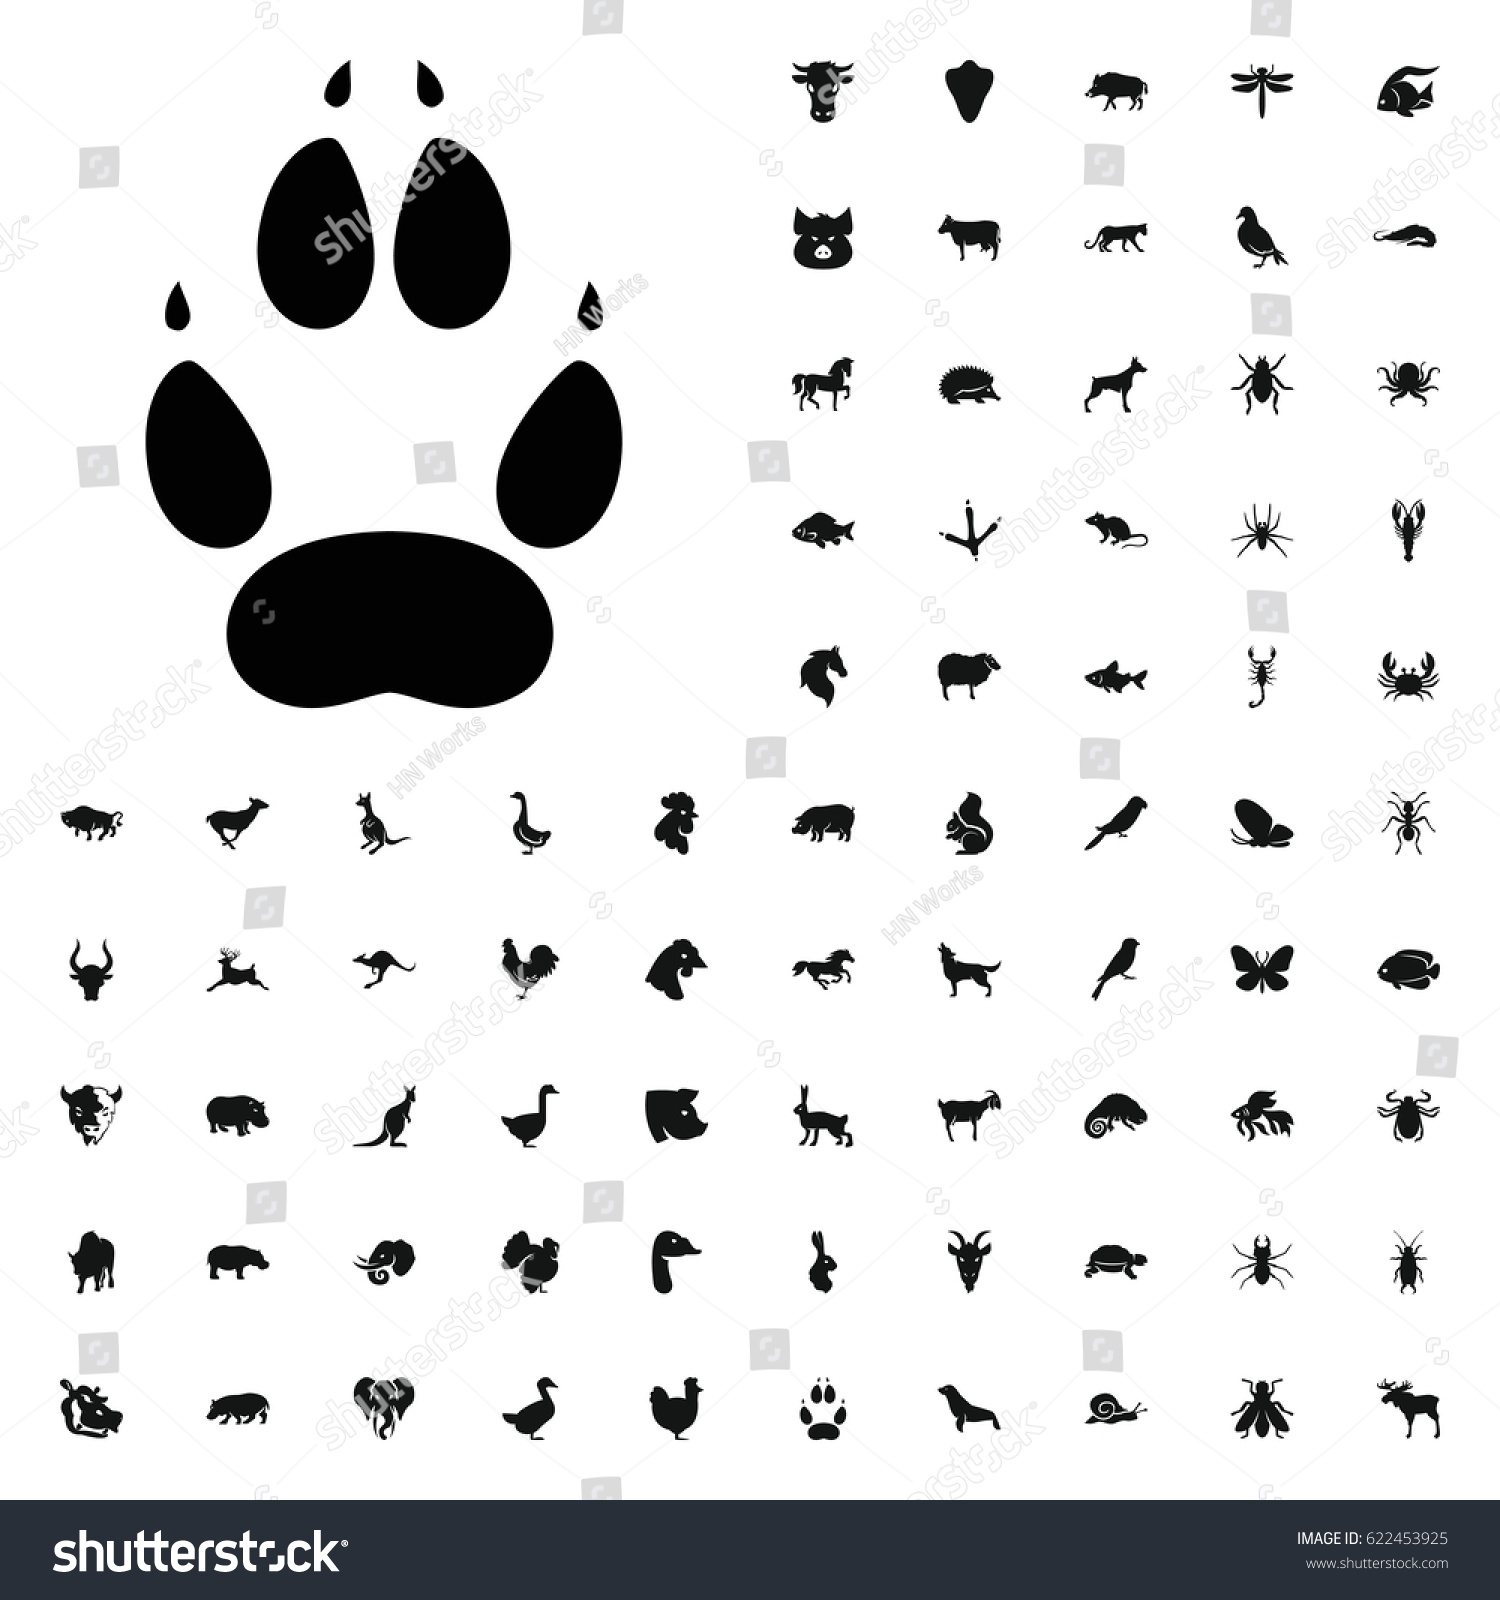 Animal Paw Icon Illustration Isolated Vector Stock Vector Royalty